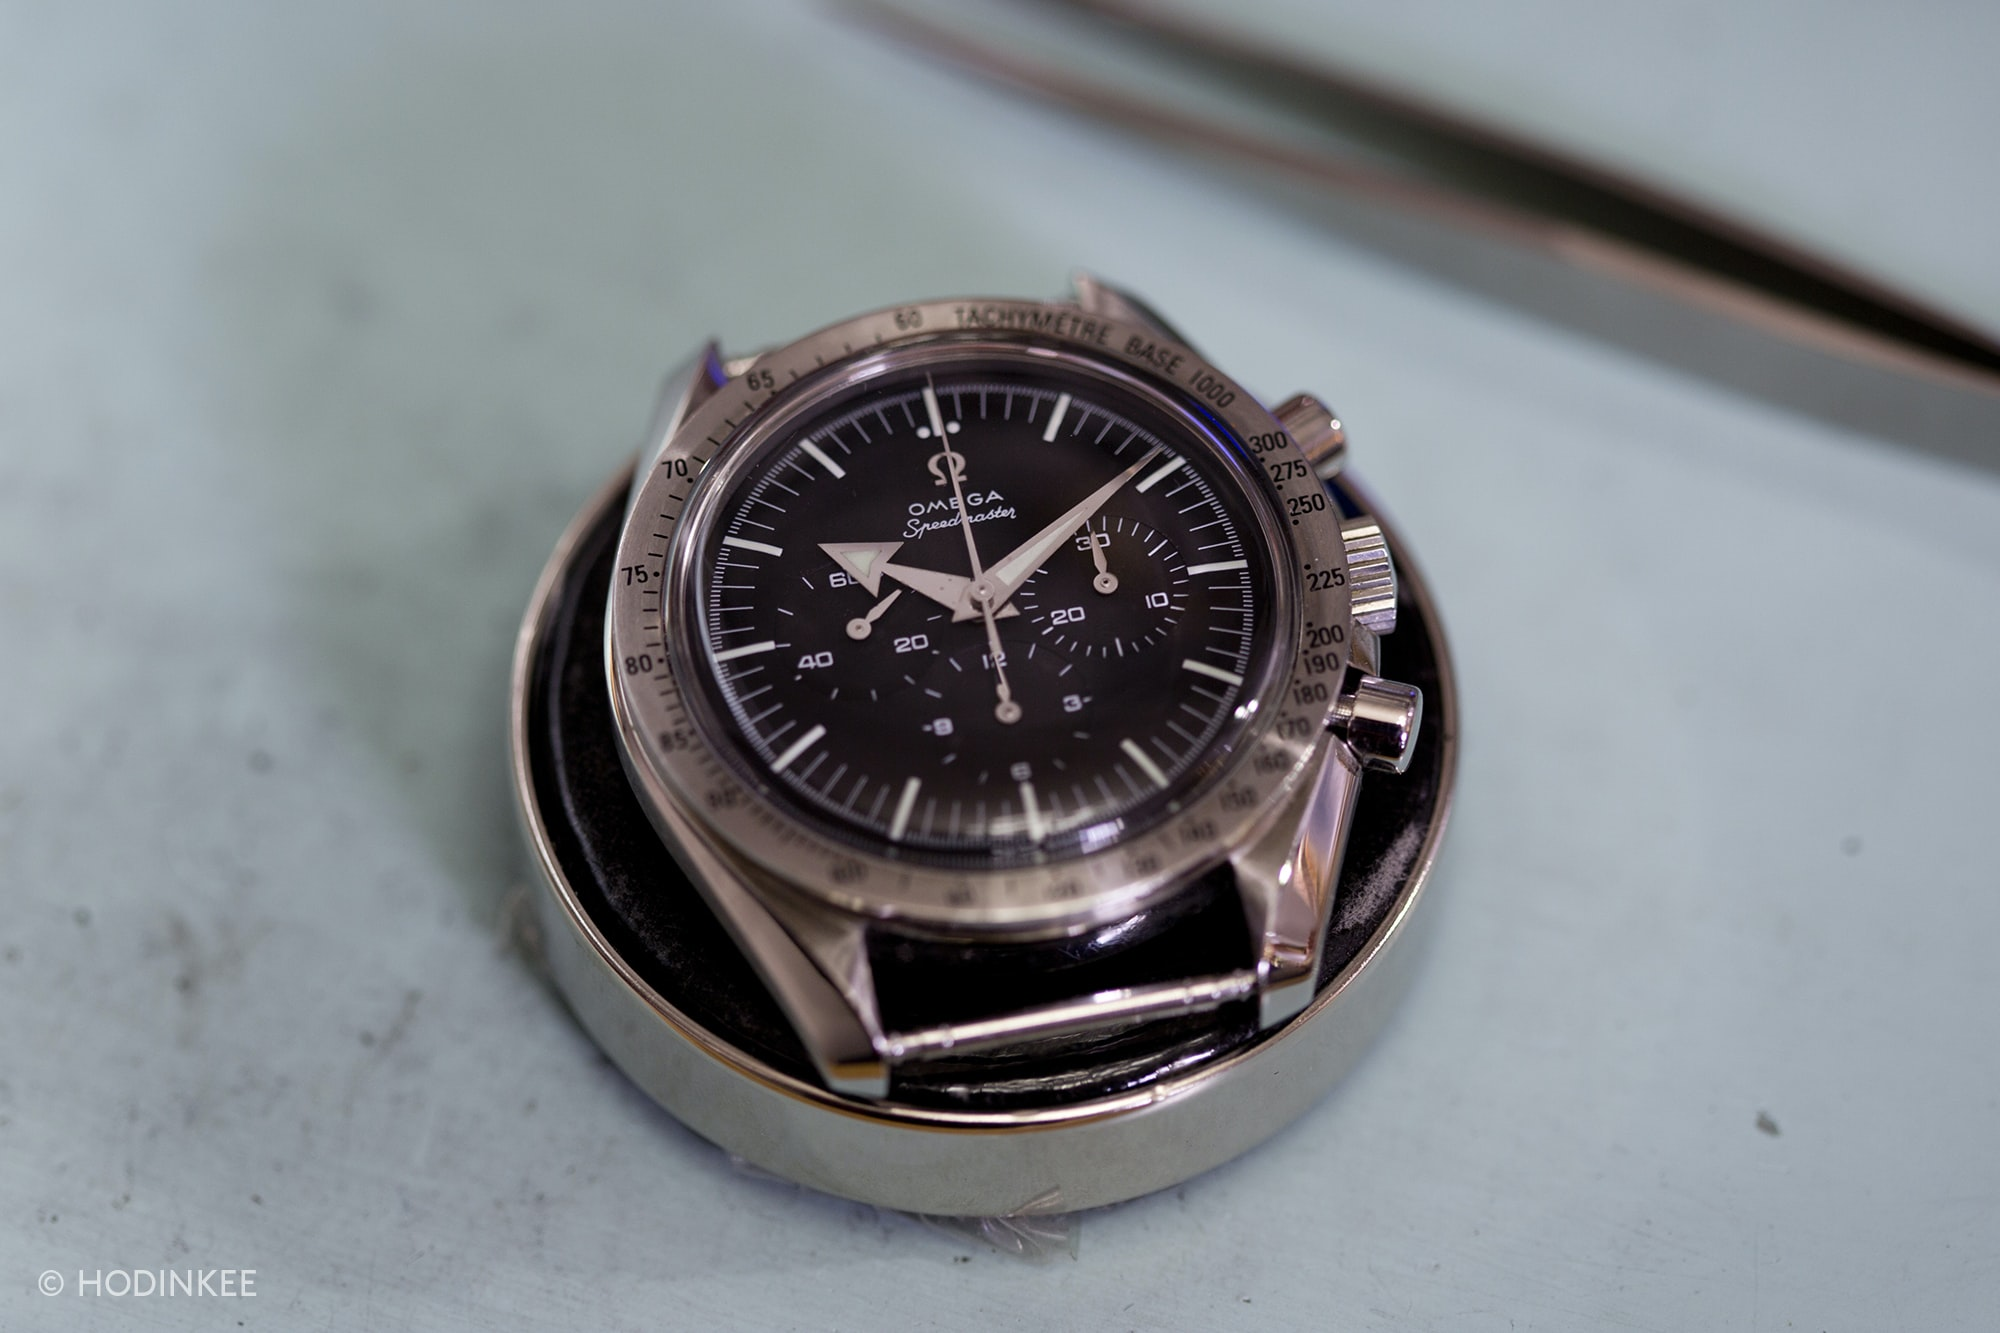 Omega Speemdaster Professional VIDEO: How To Service The 234-Component Caliber 1861 Inside The Omega Speedmaster VIDEO: How To Service The 234-Component Caliber 1861 Inside The Omega Speedmaster 588A0807